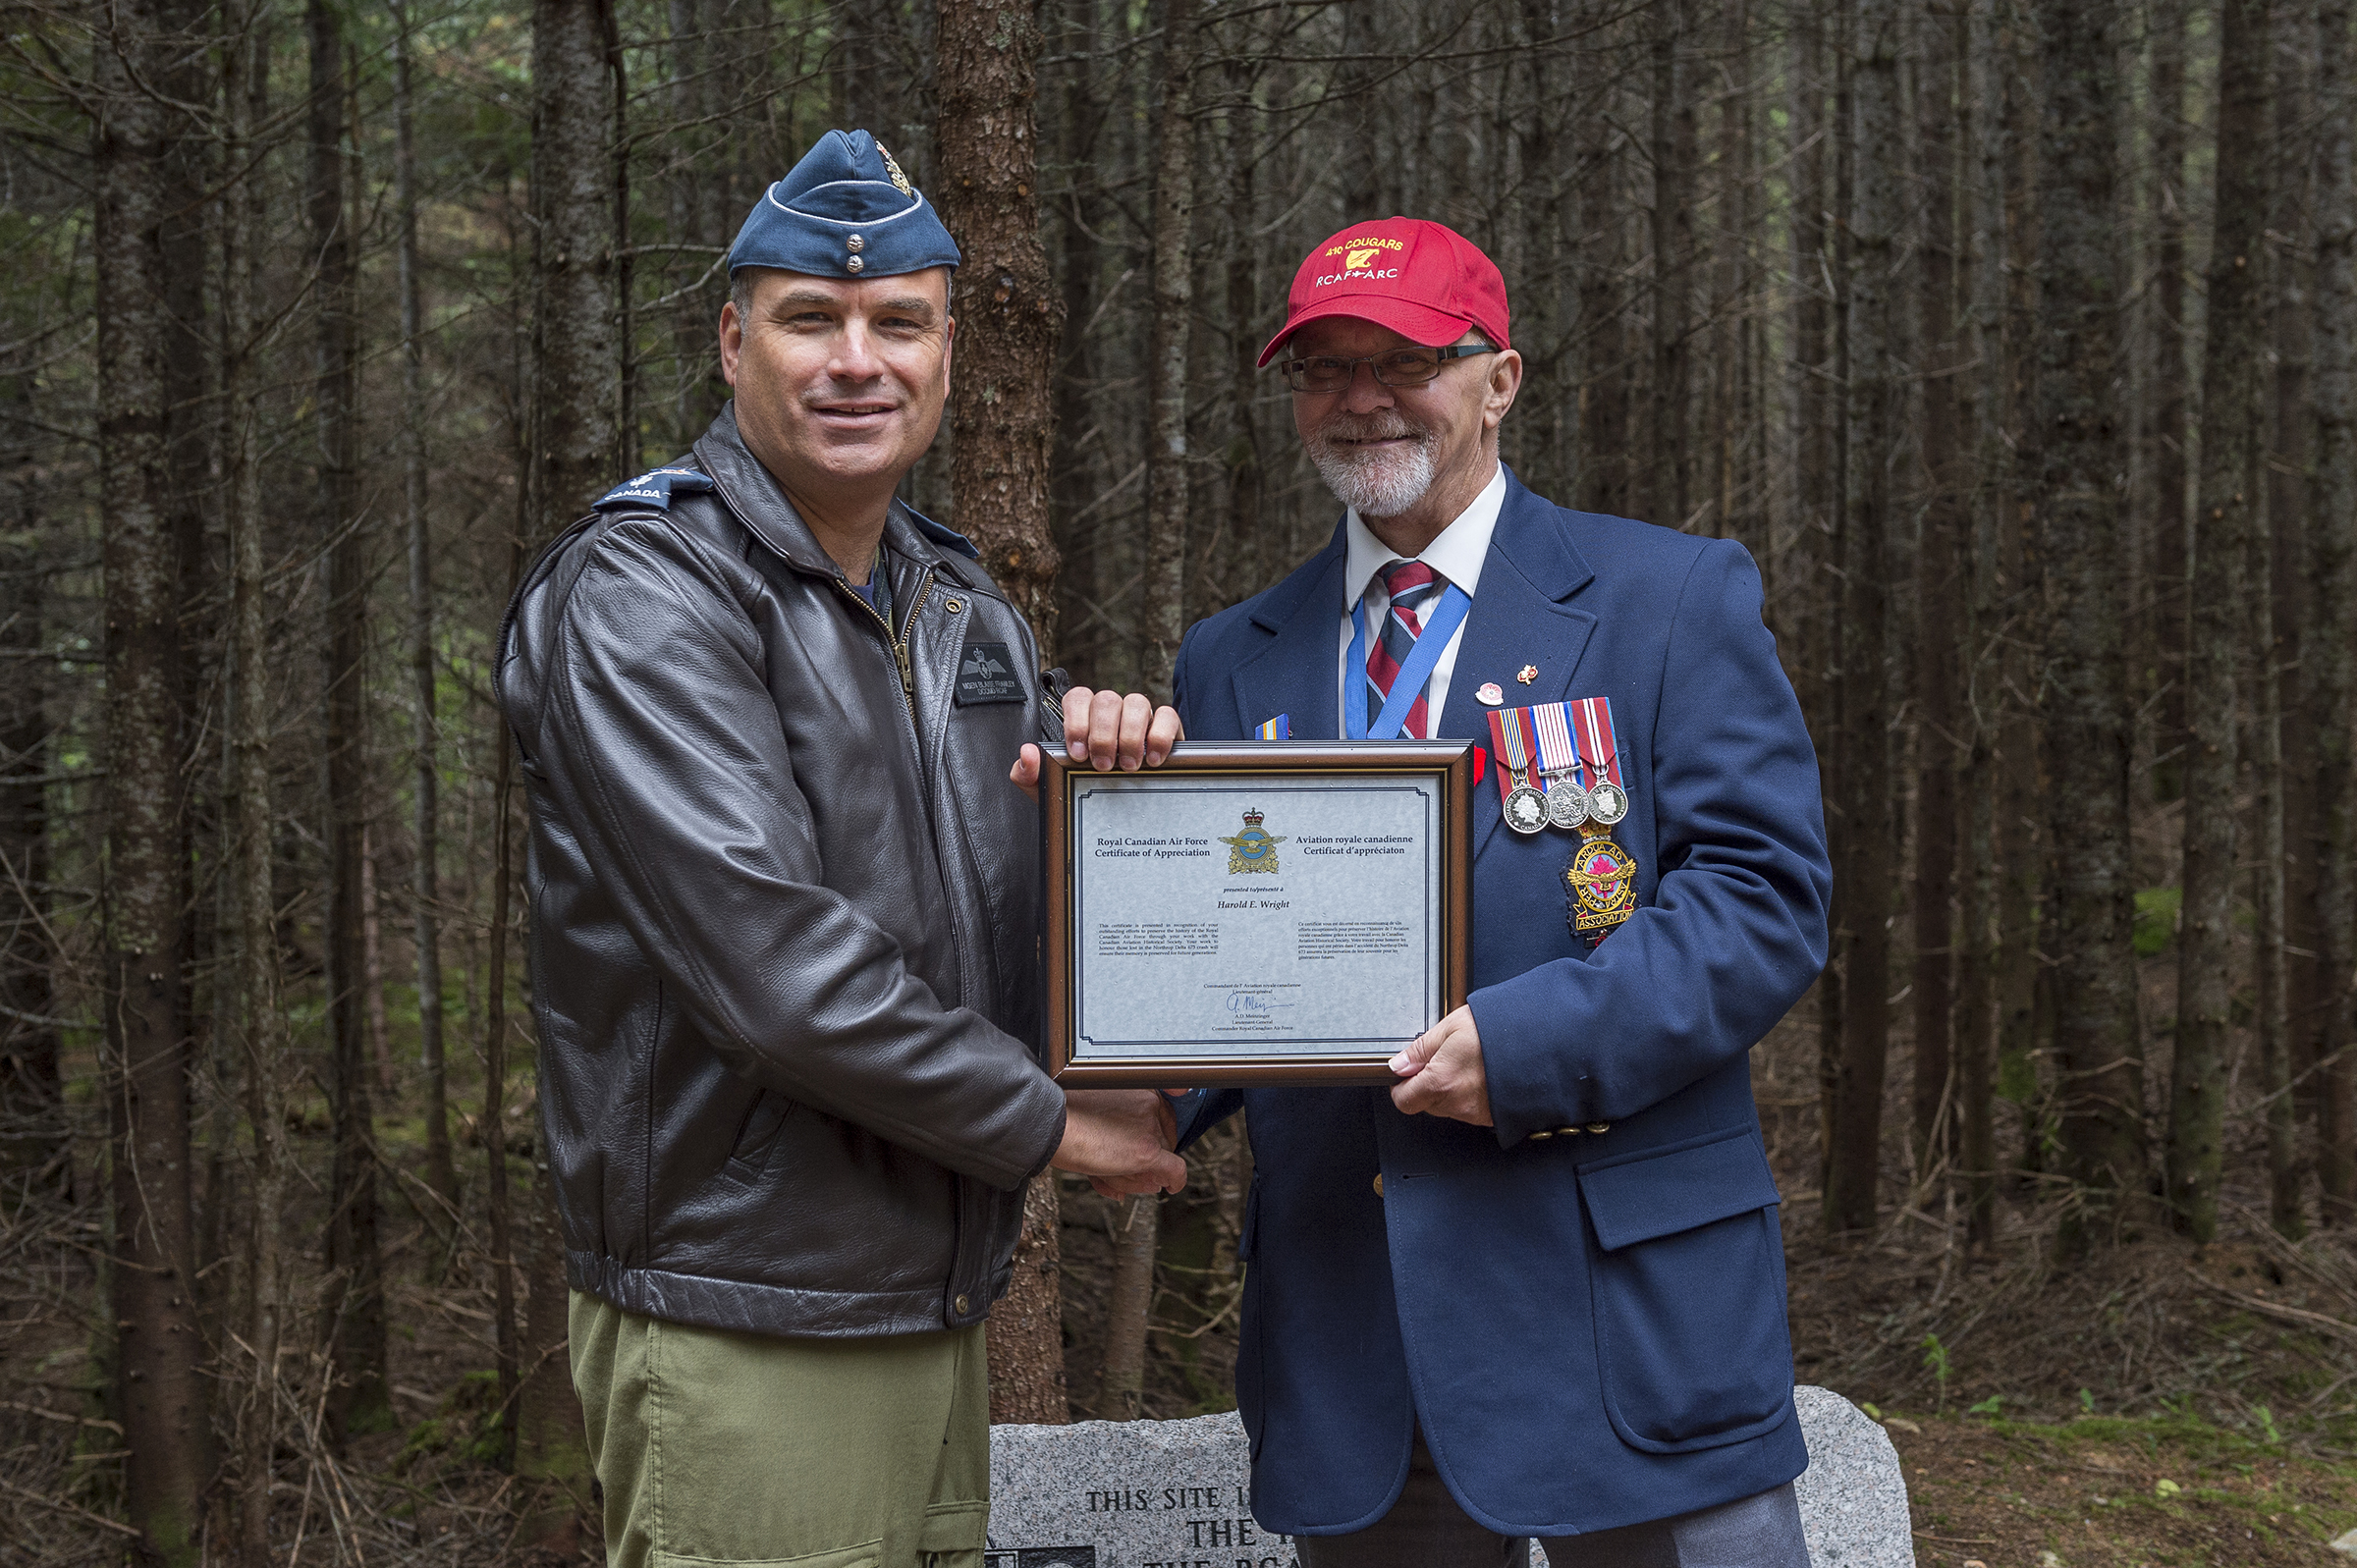 Major-General Blaise Frawley (left), presents a certificate of appreciation to Mr. Harold E. Wright of the Turnbull (N.B.) Chapter of the Canadian Aviation Historical Society during the ceremony commemorating Warrant Officer Class 2 James Edward Doan and Corporal David Alexander Rennie who died on September 14, 1939, when their Northrop Delta aircraft crashed near Plaster Rock, New Brunswick. PHOTO: Corporal Nicolas Alonso, GN02-2019-0949-021